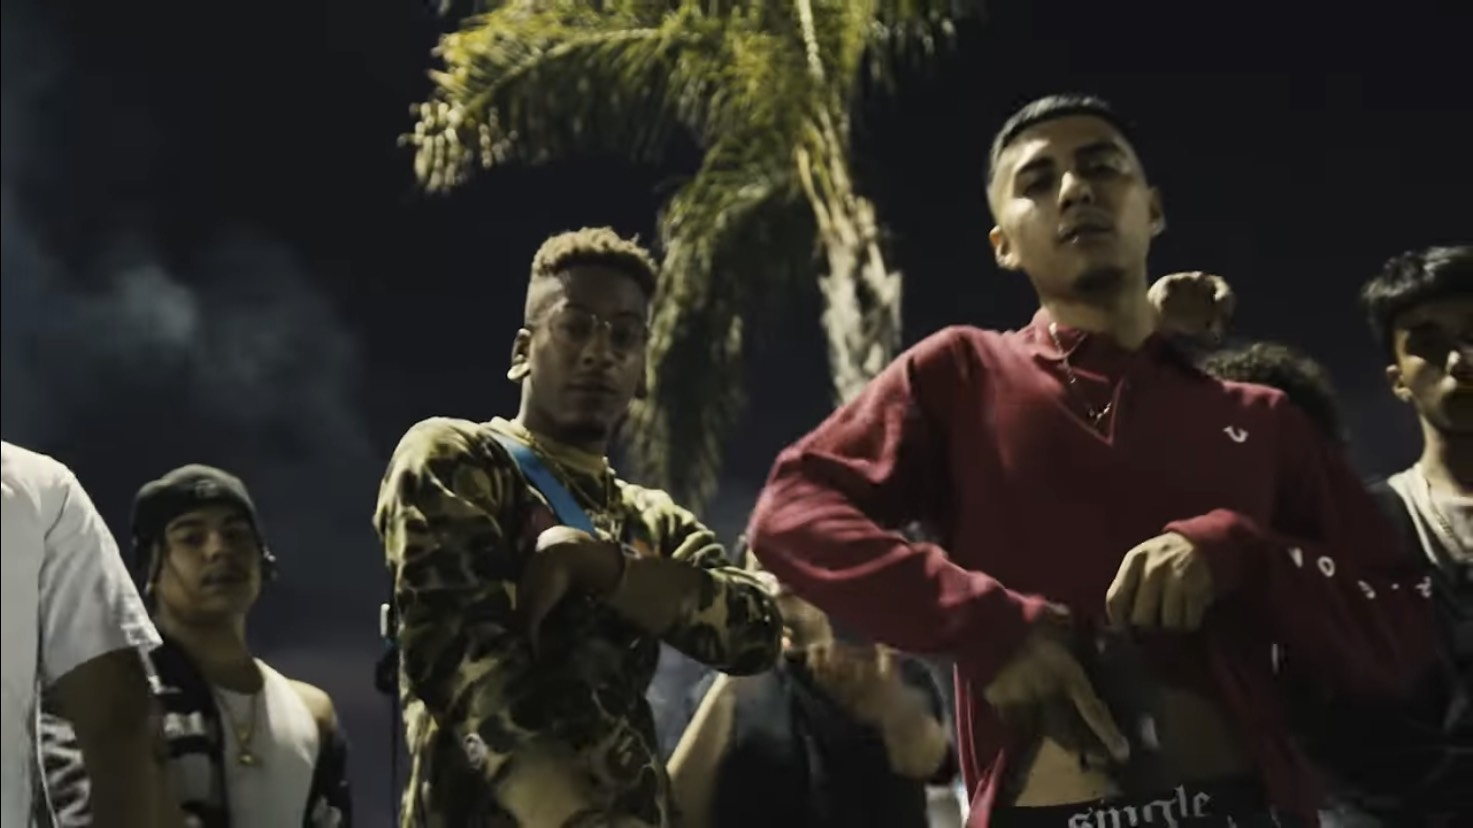 MoneySign $uede Debuts AzChike-Guest-Starring 'Geeked Up' Visual